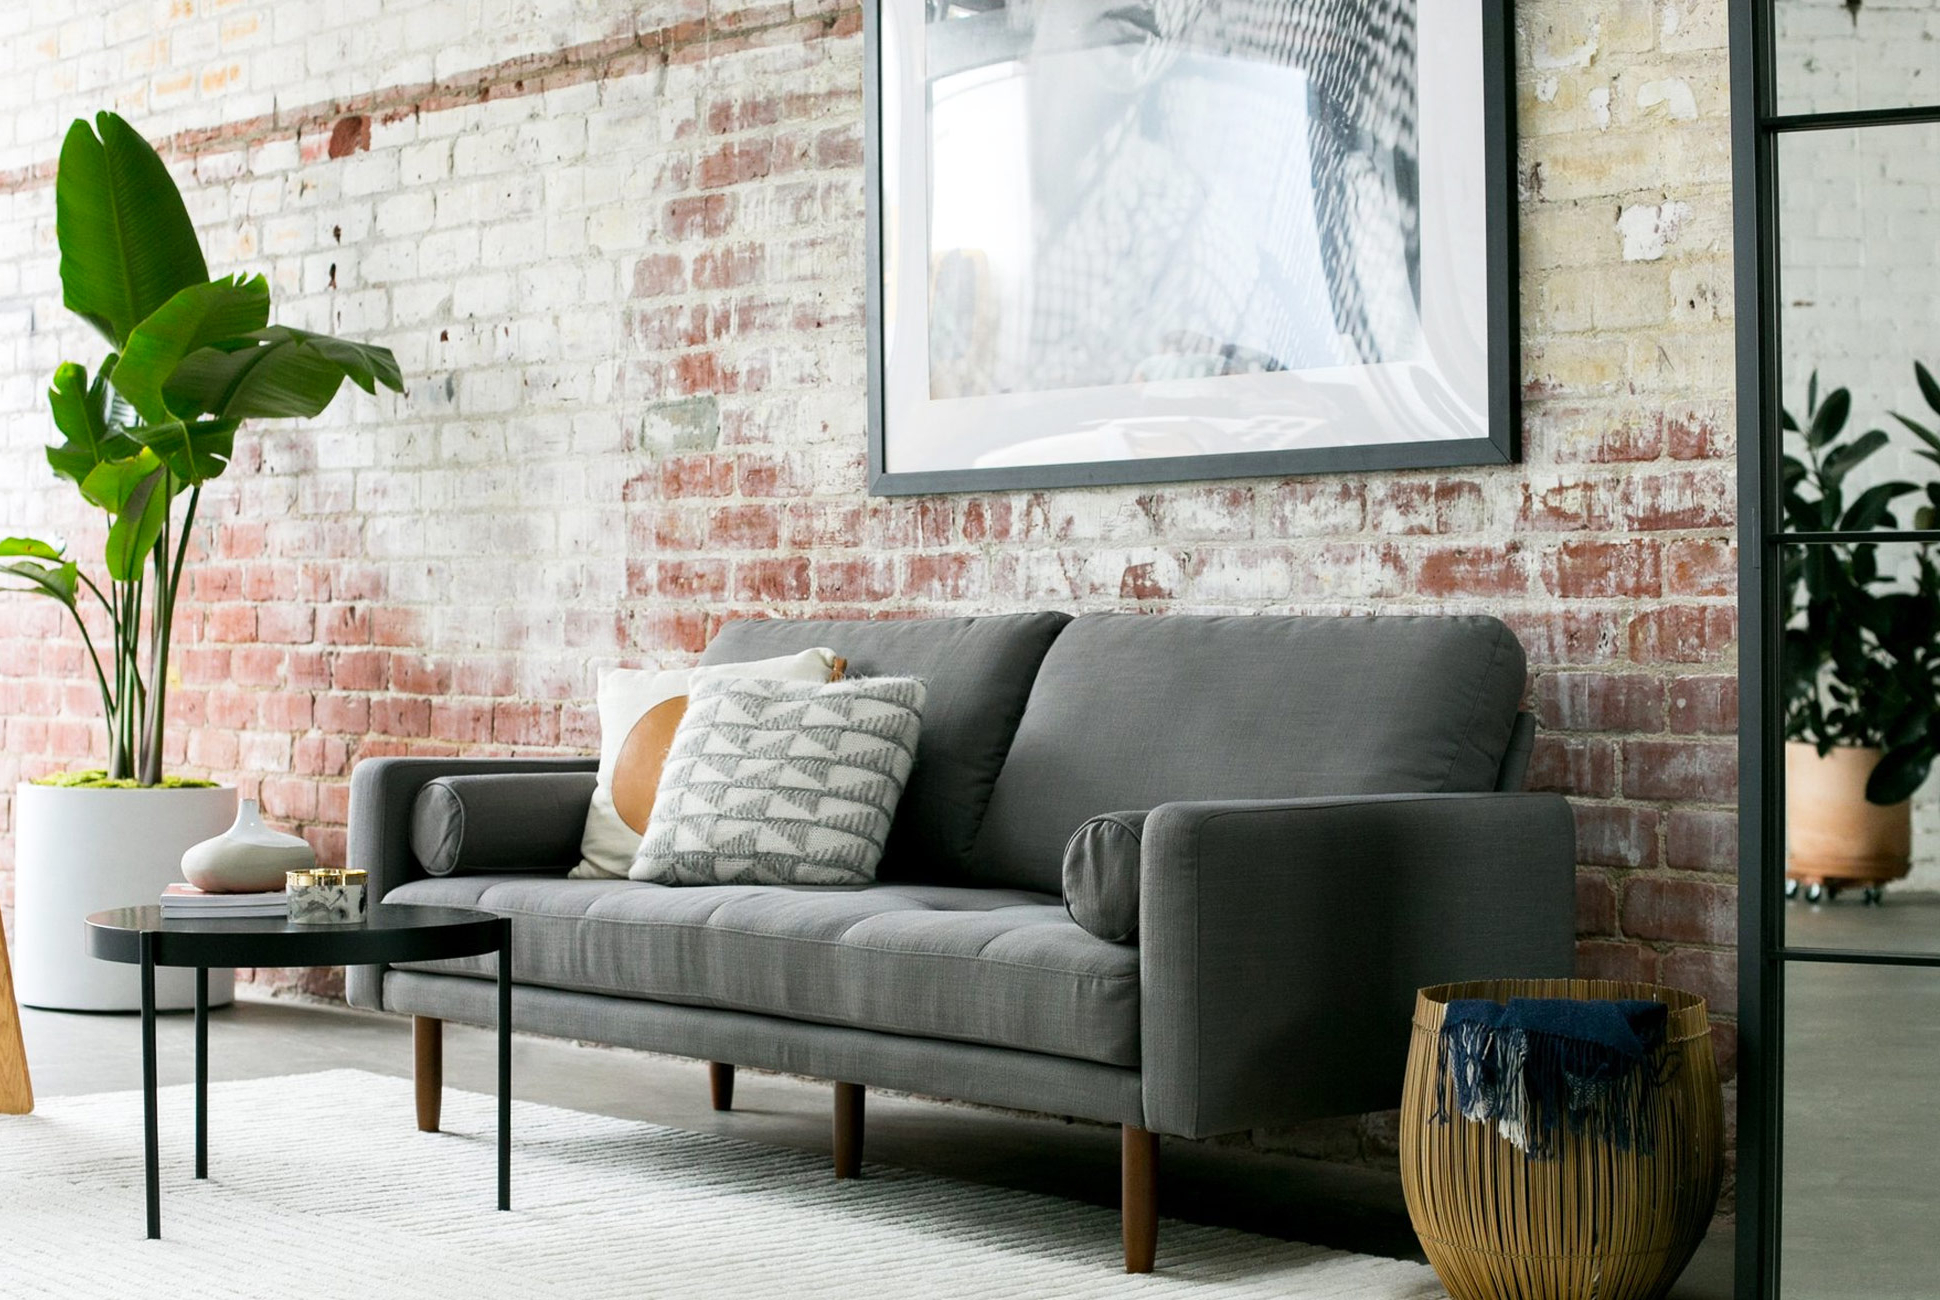 Cheap Sofa Chairs With Recent 14 Best Sofas And Couches You Can Buy In 2018 • Gear Patrol (View 10 of 20)